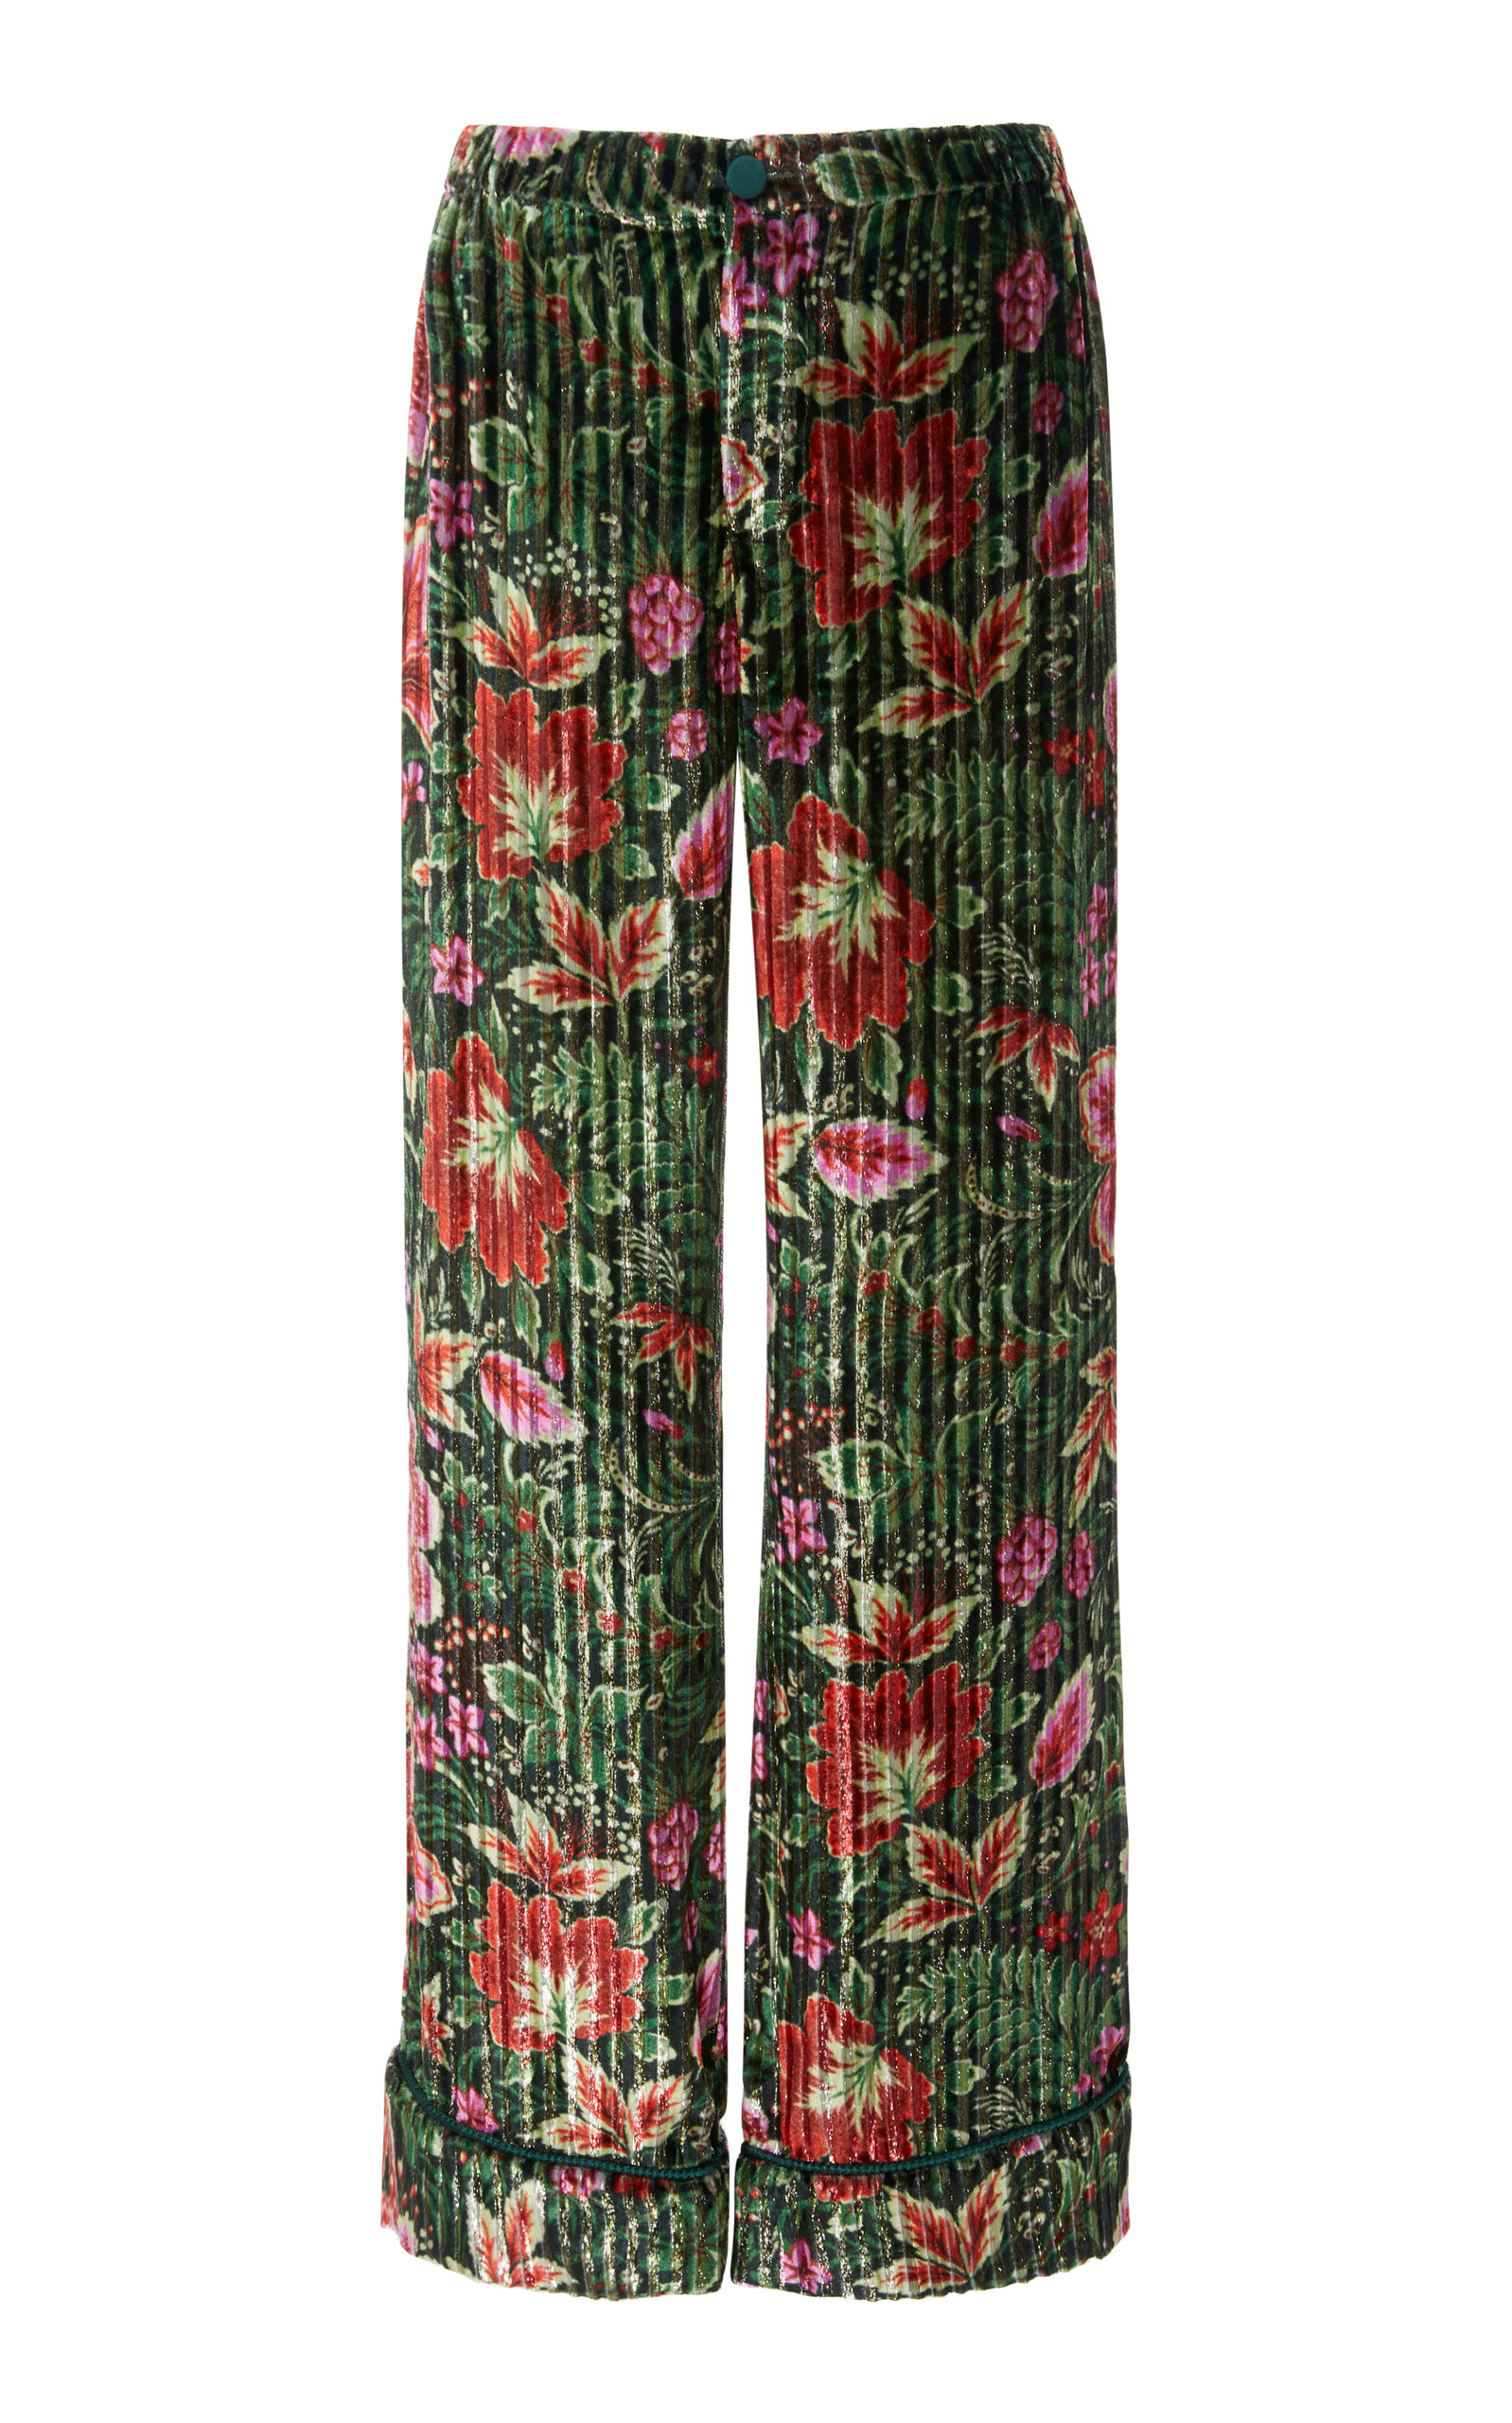 F.R.S FOR RESTLESS SLEEPERS Etere Floral Silk Straight-Leg Pant in Green